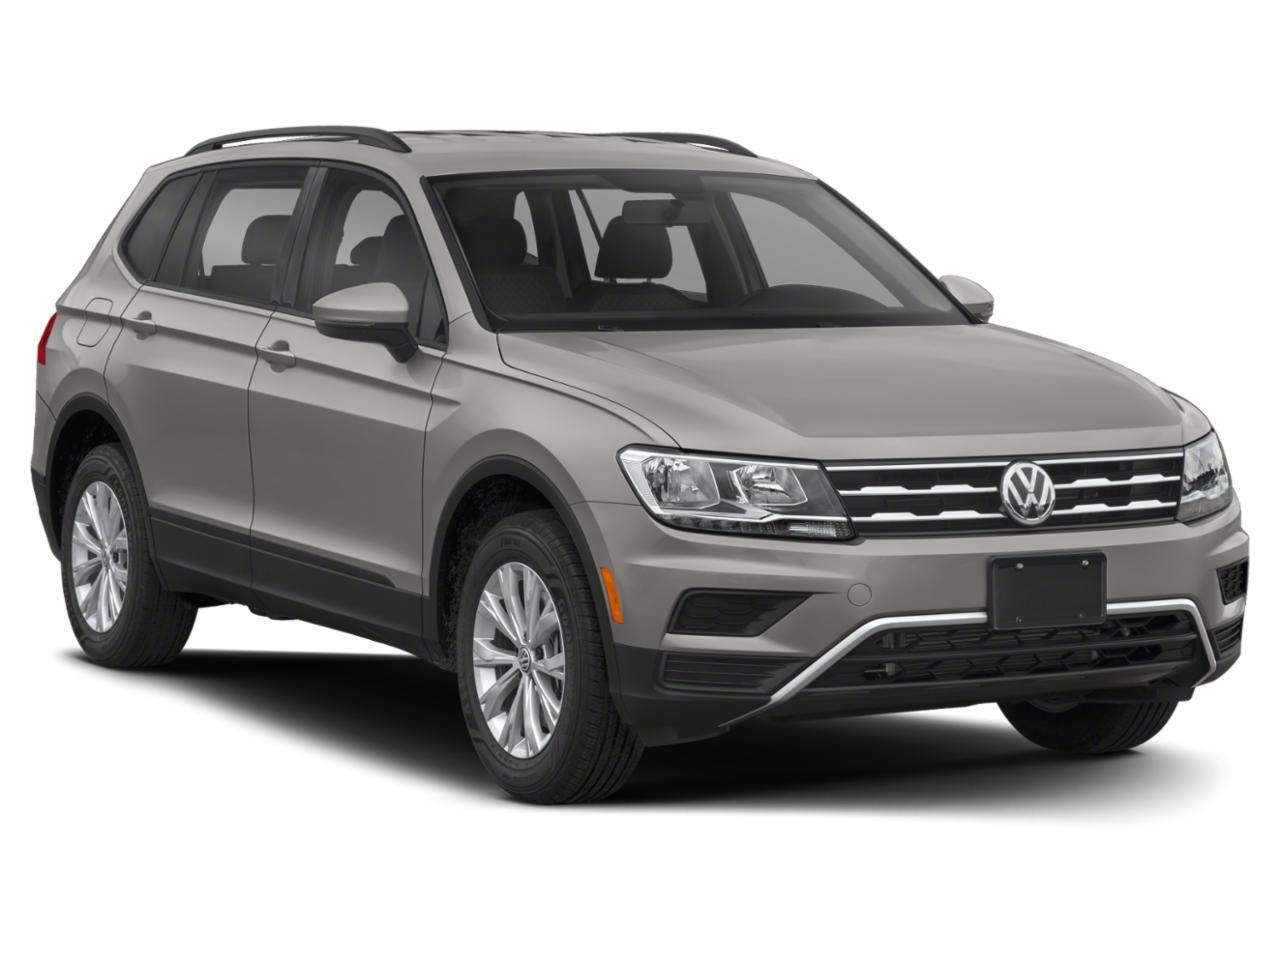 2021 Volkswagen Tiguan 2.0T S 4MOTION Port Angeles WA